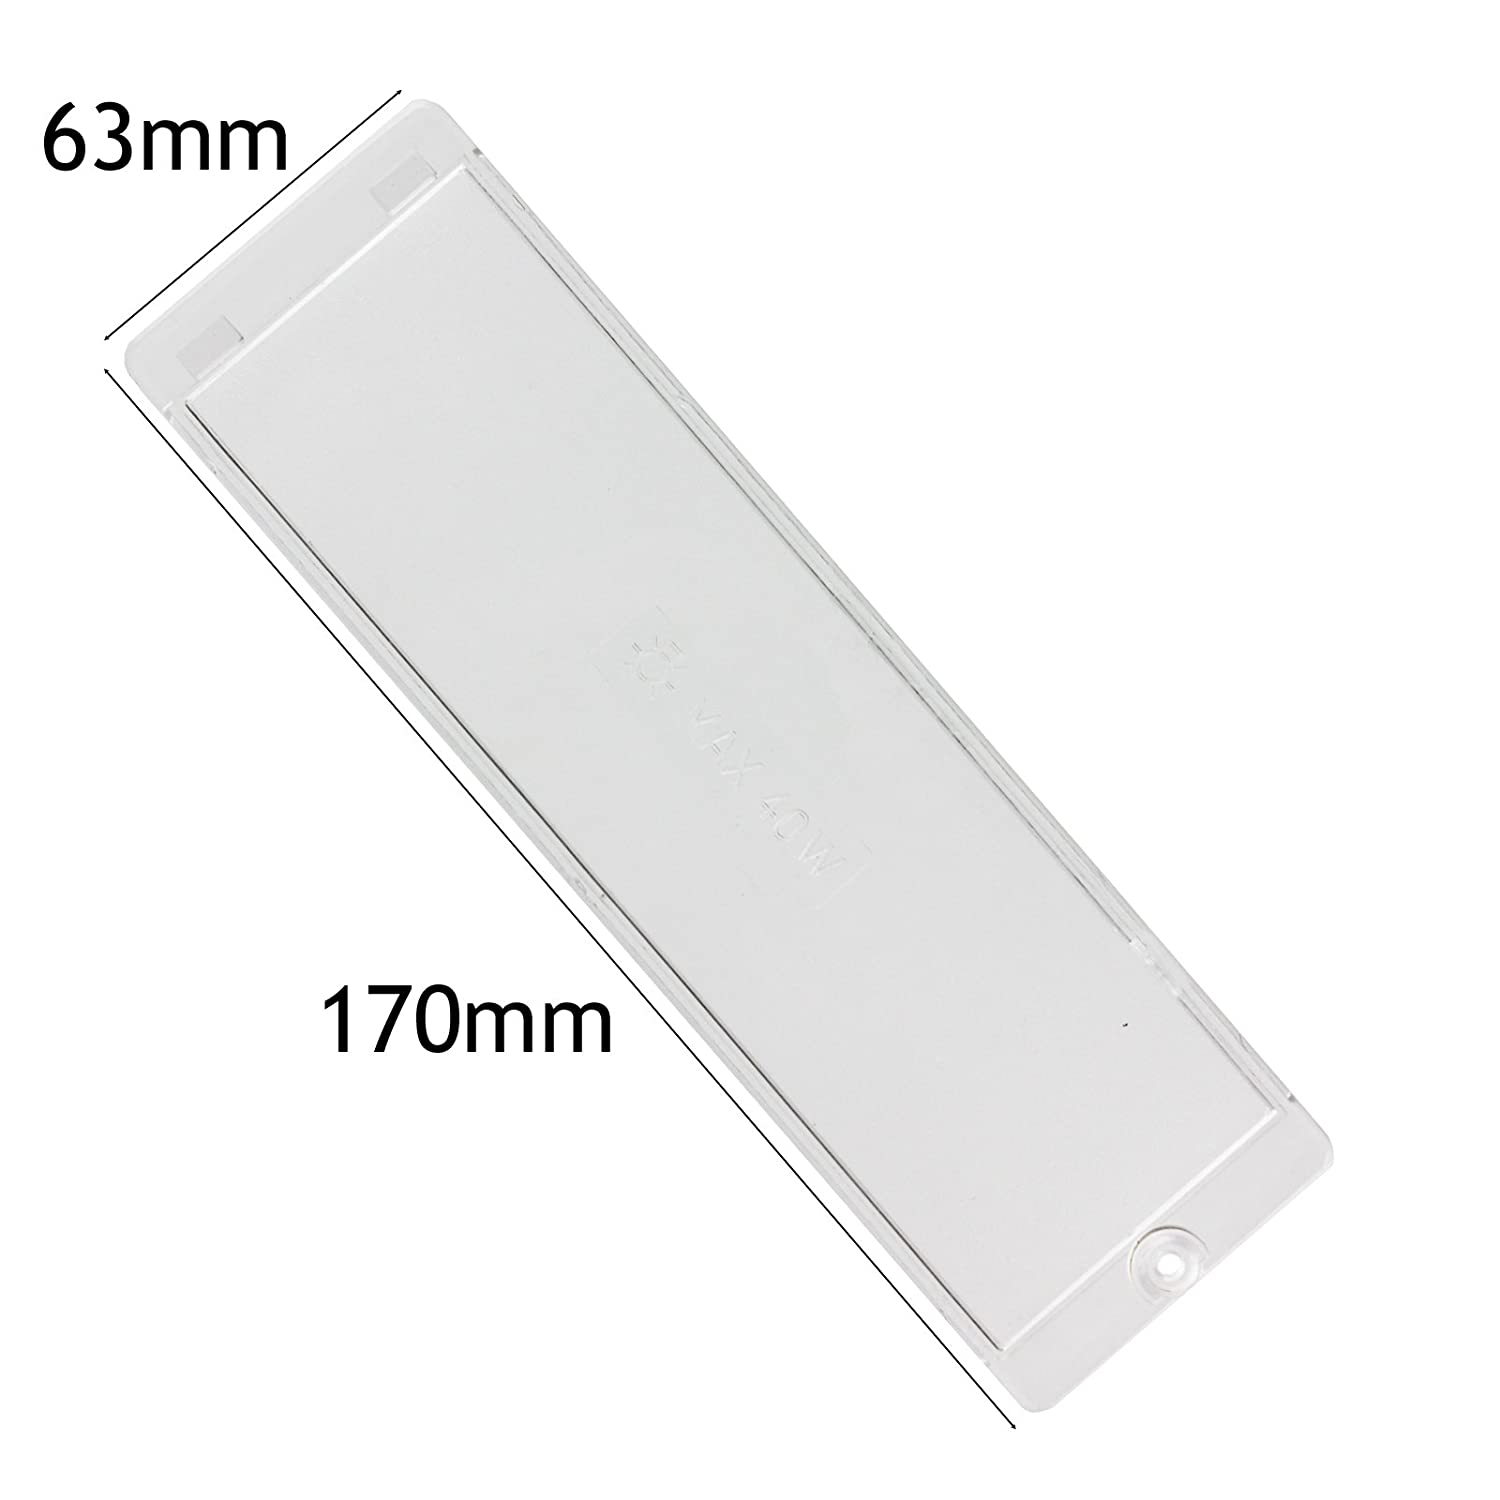 SPARES2GO Cooker Hood Light Diffuser/Lens Cover Plate (170mm x 63mm)